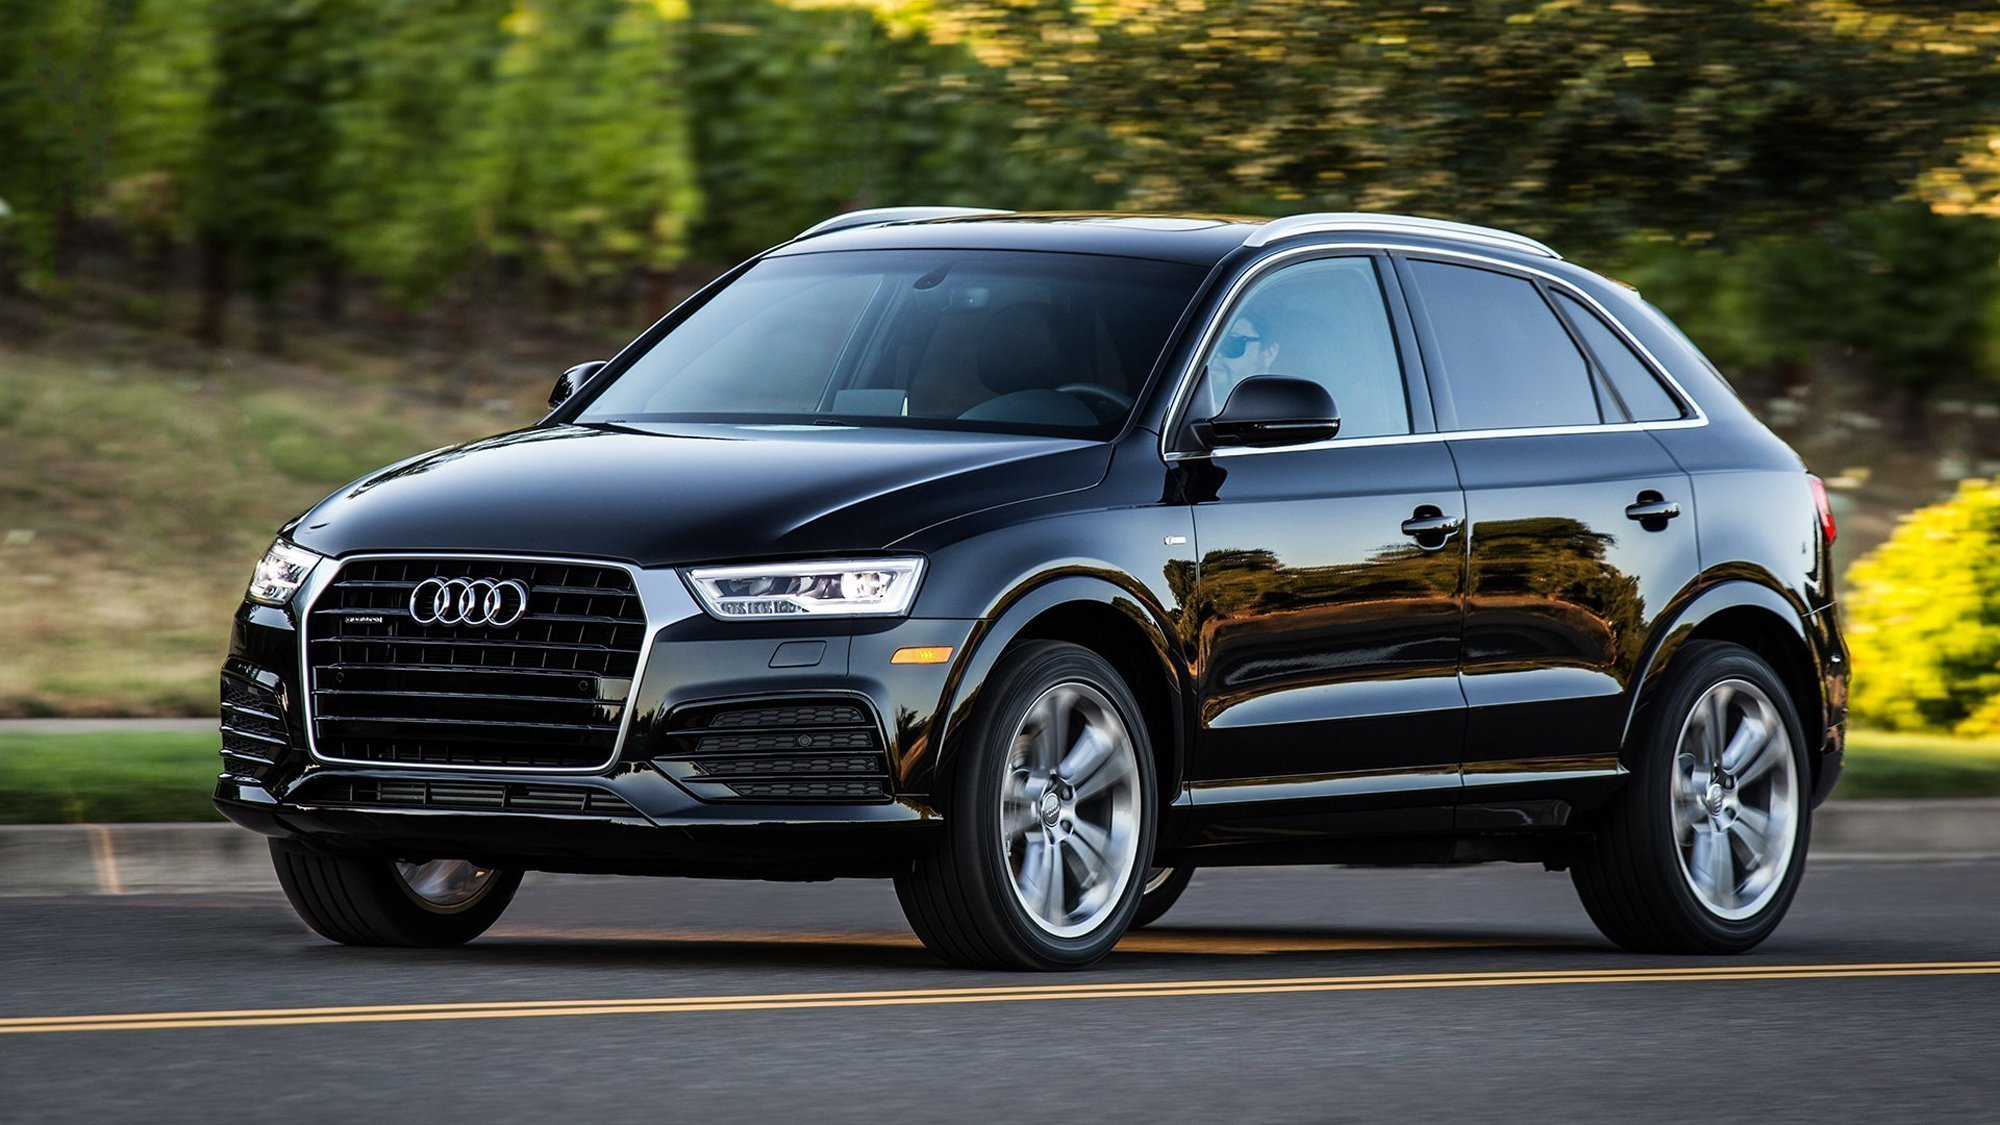 a audi l are for line up through show further new models s styling available air even enhancements its ramp now visual impact strength suspended of striking luxury the edition suv uk